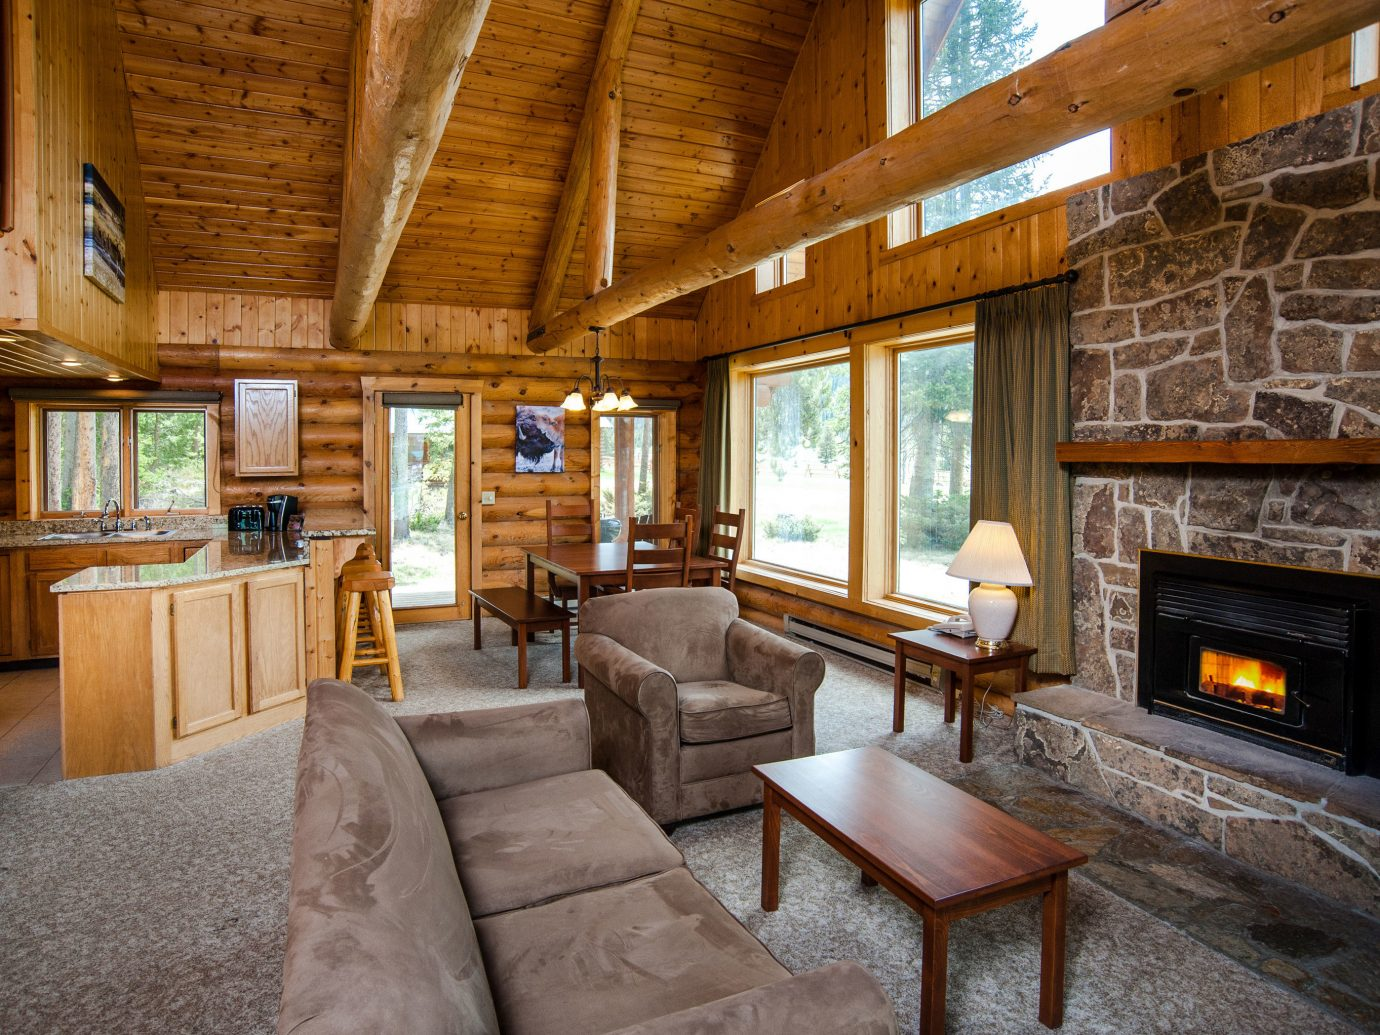 Glamping Hotels Montana Outdoors + Adventure Trip Ideas indoor Living floor room sofa Fireplace living room window ceiling interior design real estate wood home furniture beam estate house log cabin Lobby stone